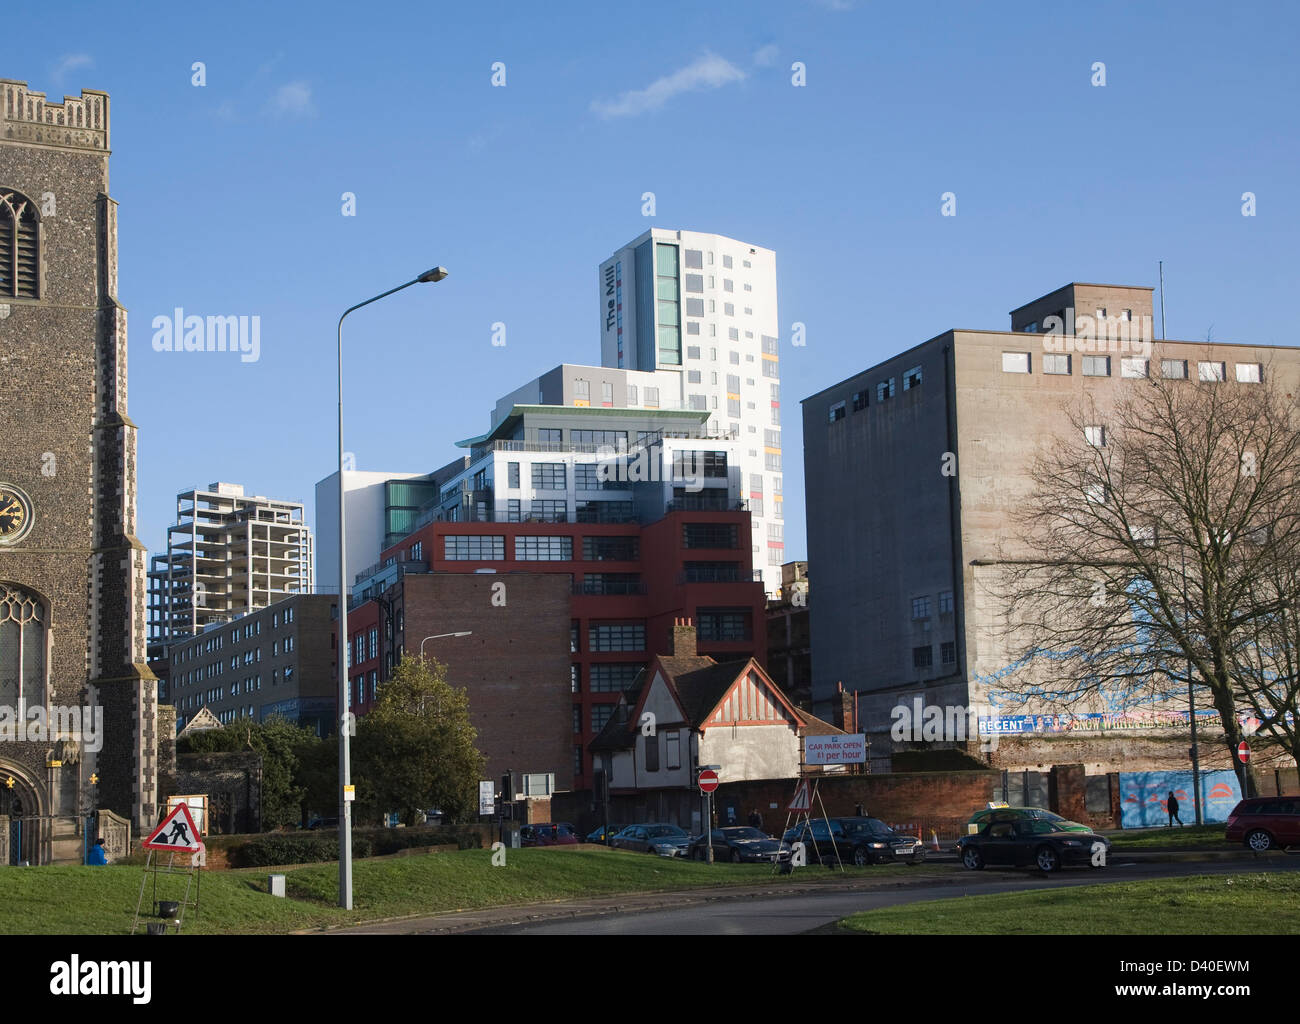 New and old mixed use buildings in Zone in Transition near the Wet Dock, Ipswich, Suffolk, England - Stock Image